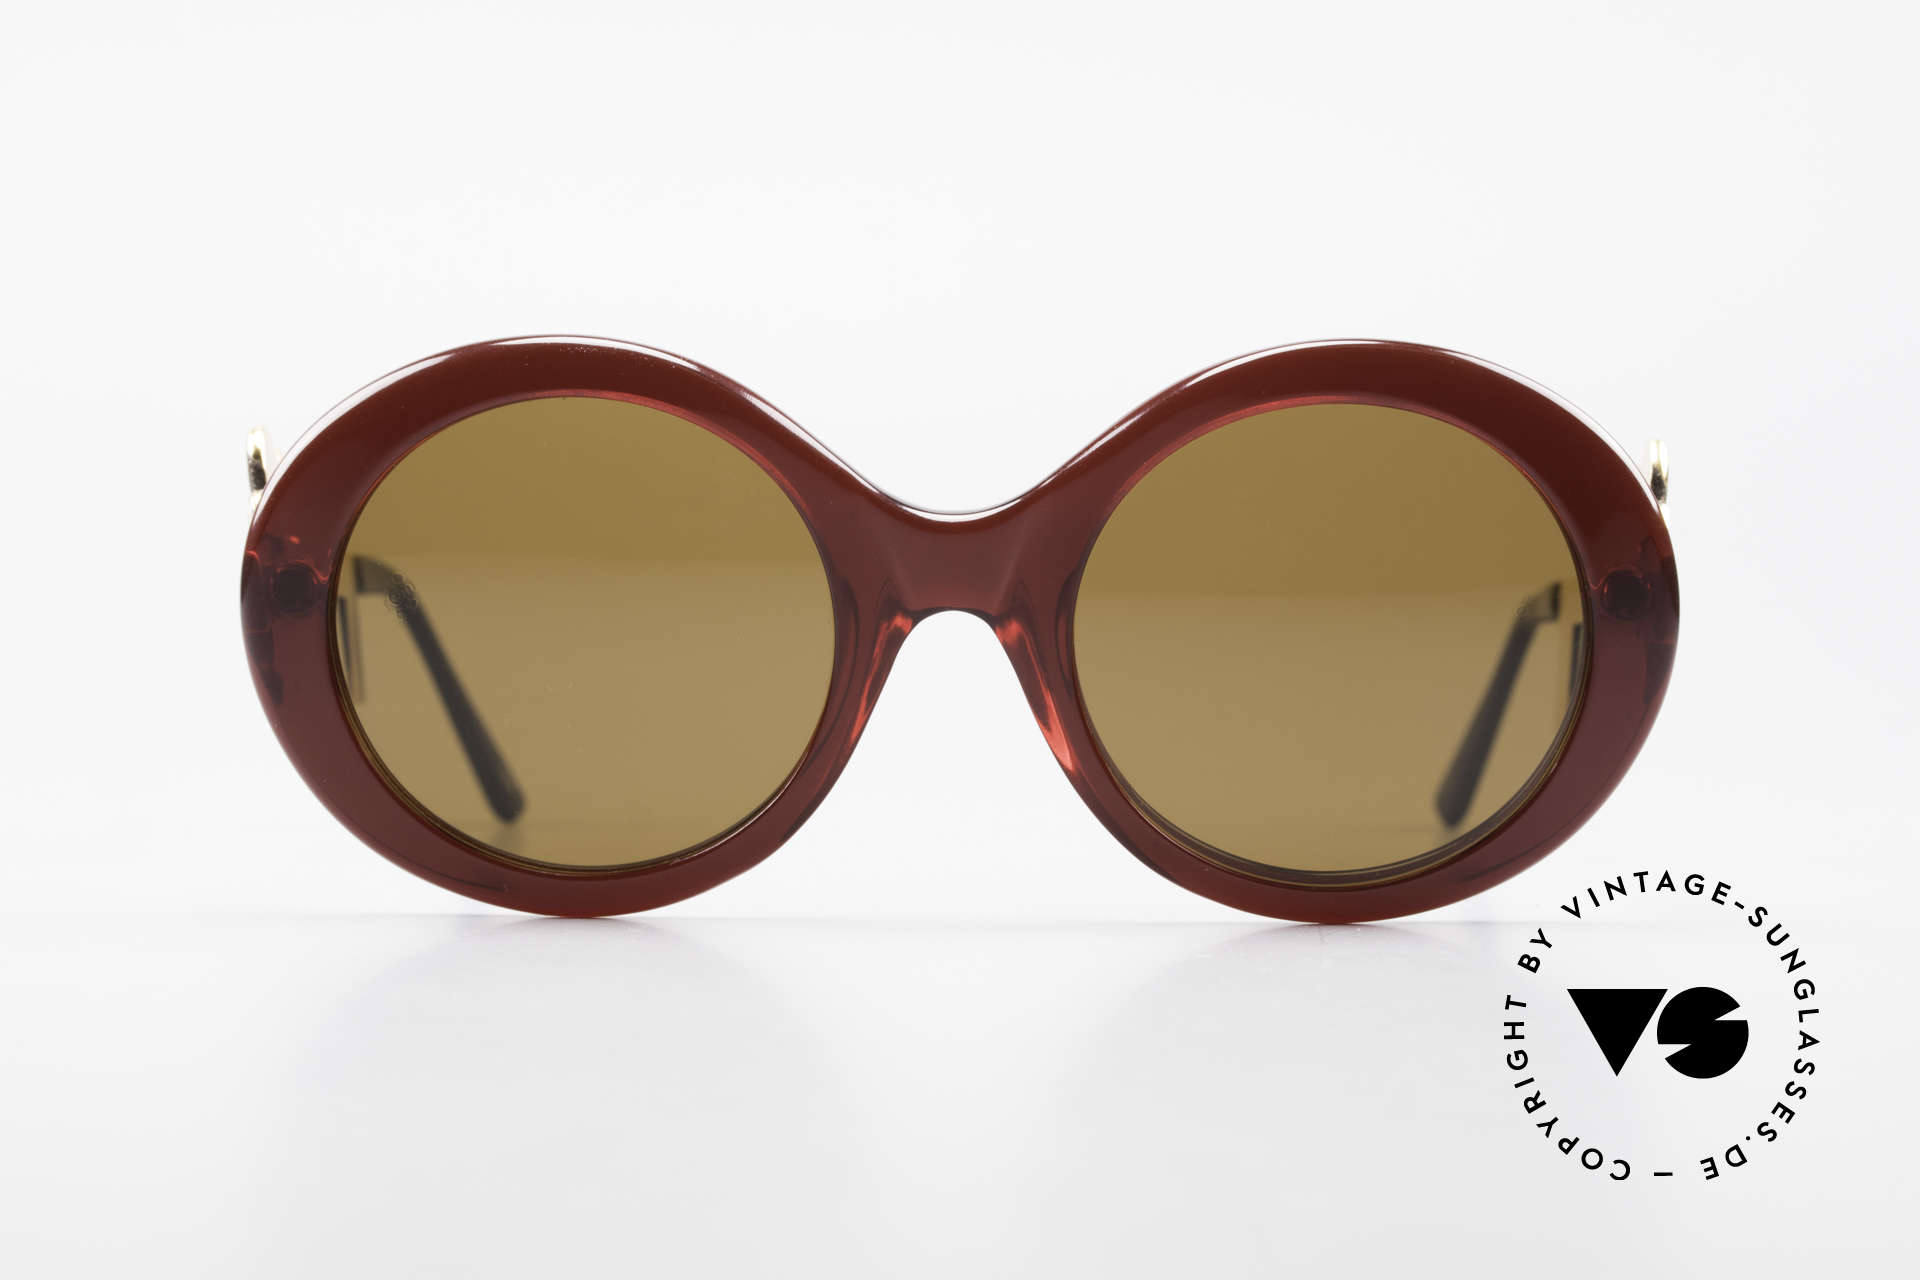 Moschino M254 Antique Key Sunglasses Rare, Persol produced the Moschino creations in the 80s, Made for Women